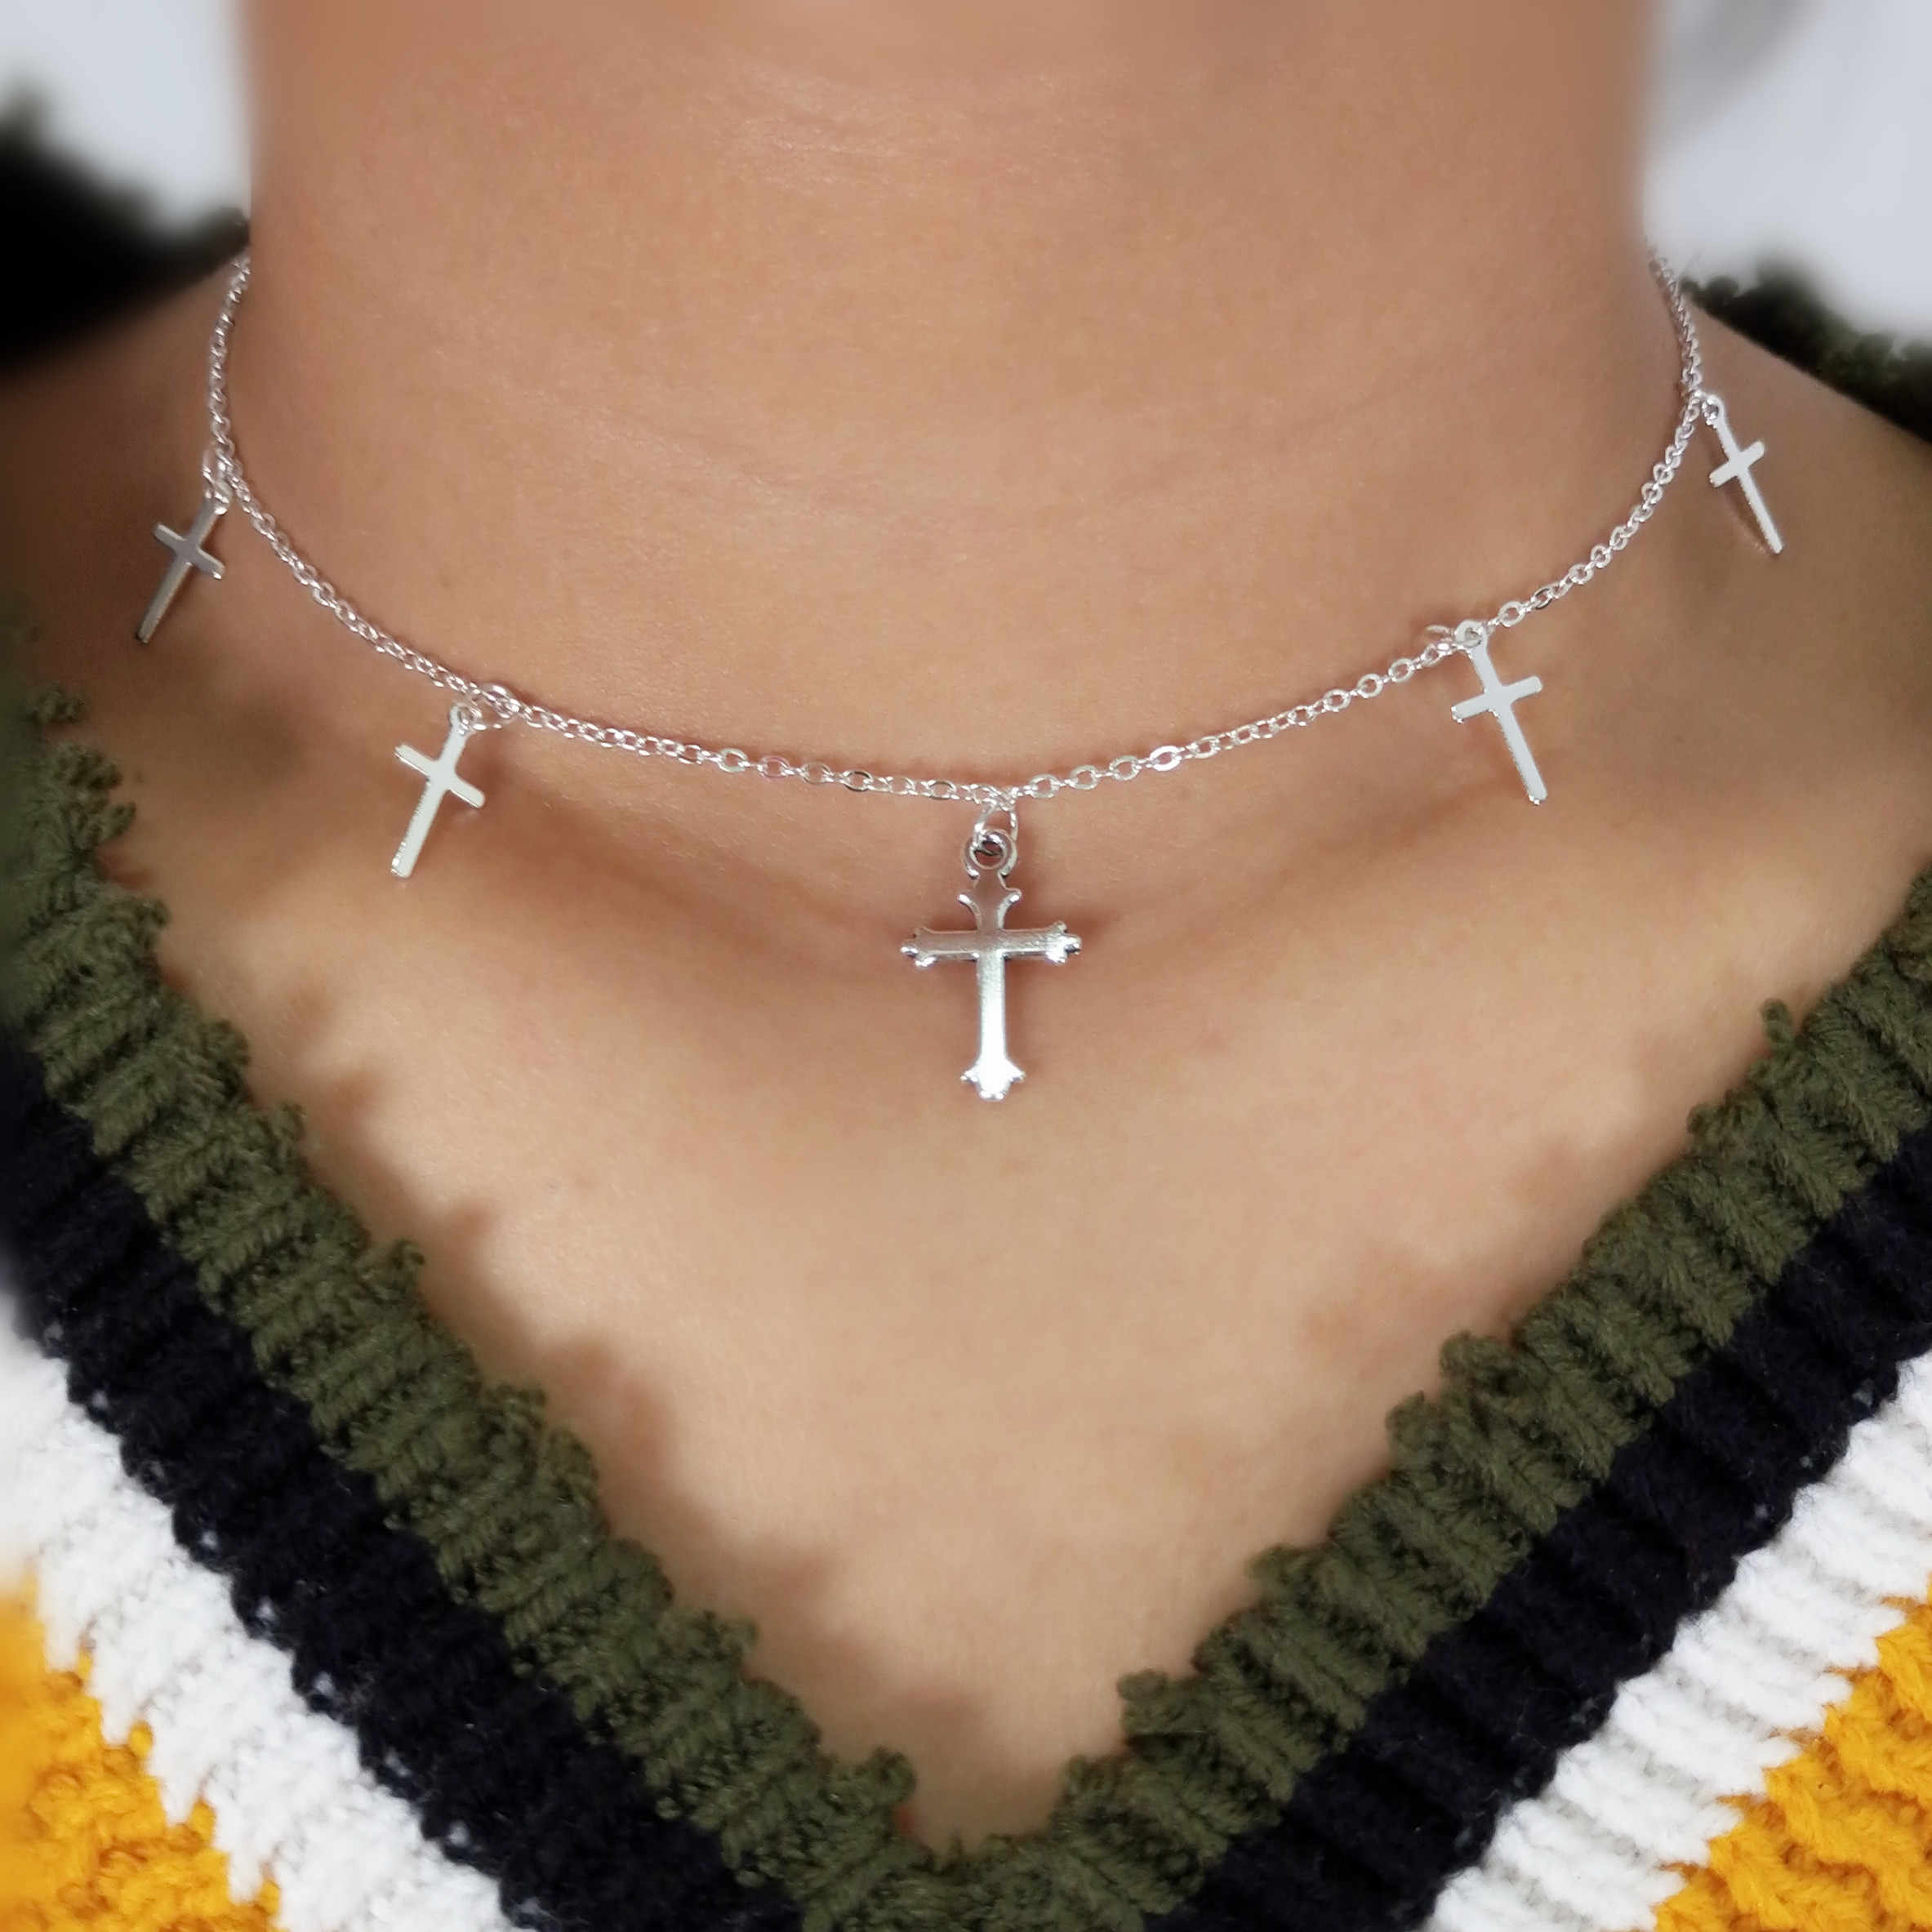 Silver Color Cross Necklaces & Pendants for Women Choker Clavicle Chain Jewelry Femme Bijoux Collares